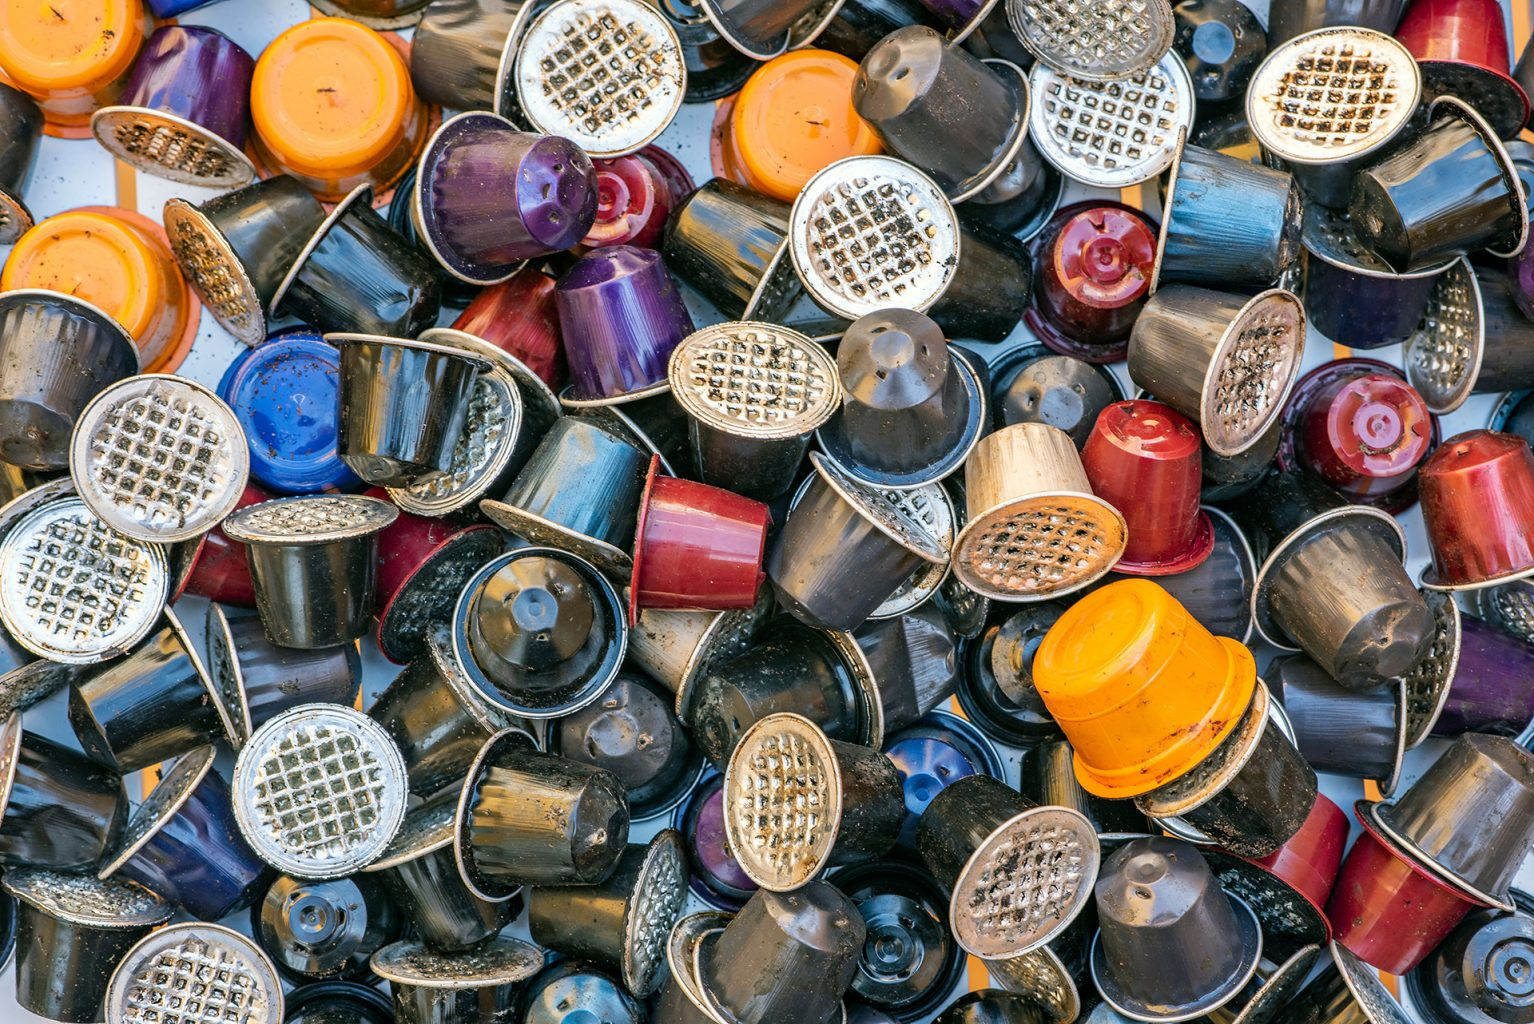 Bio-recycled - Recycled coffee from coffee machines and capsules.